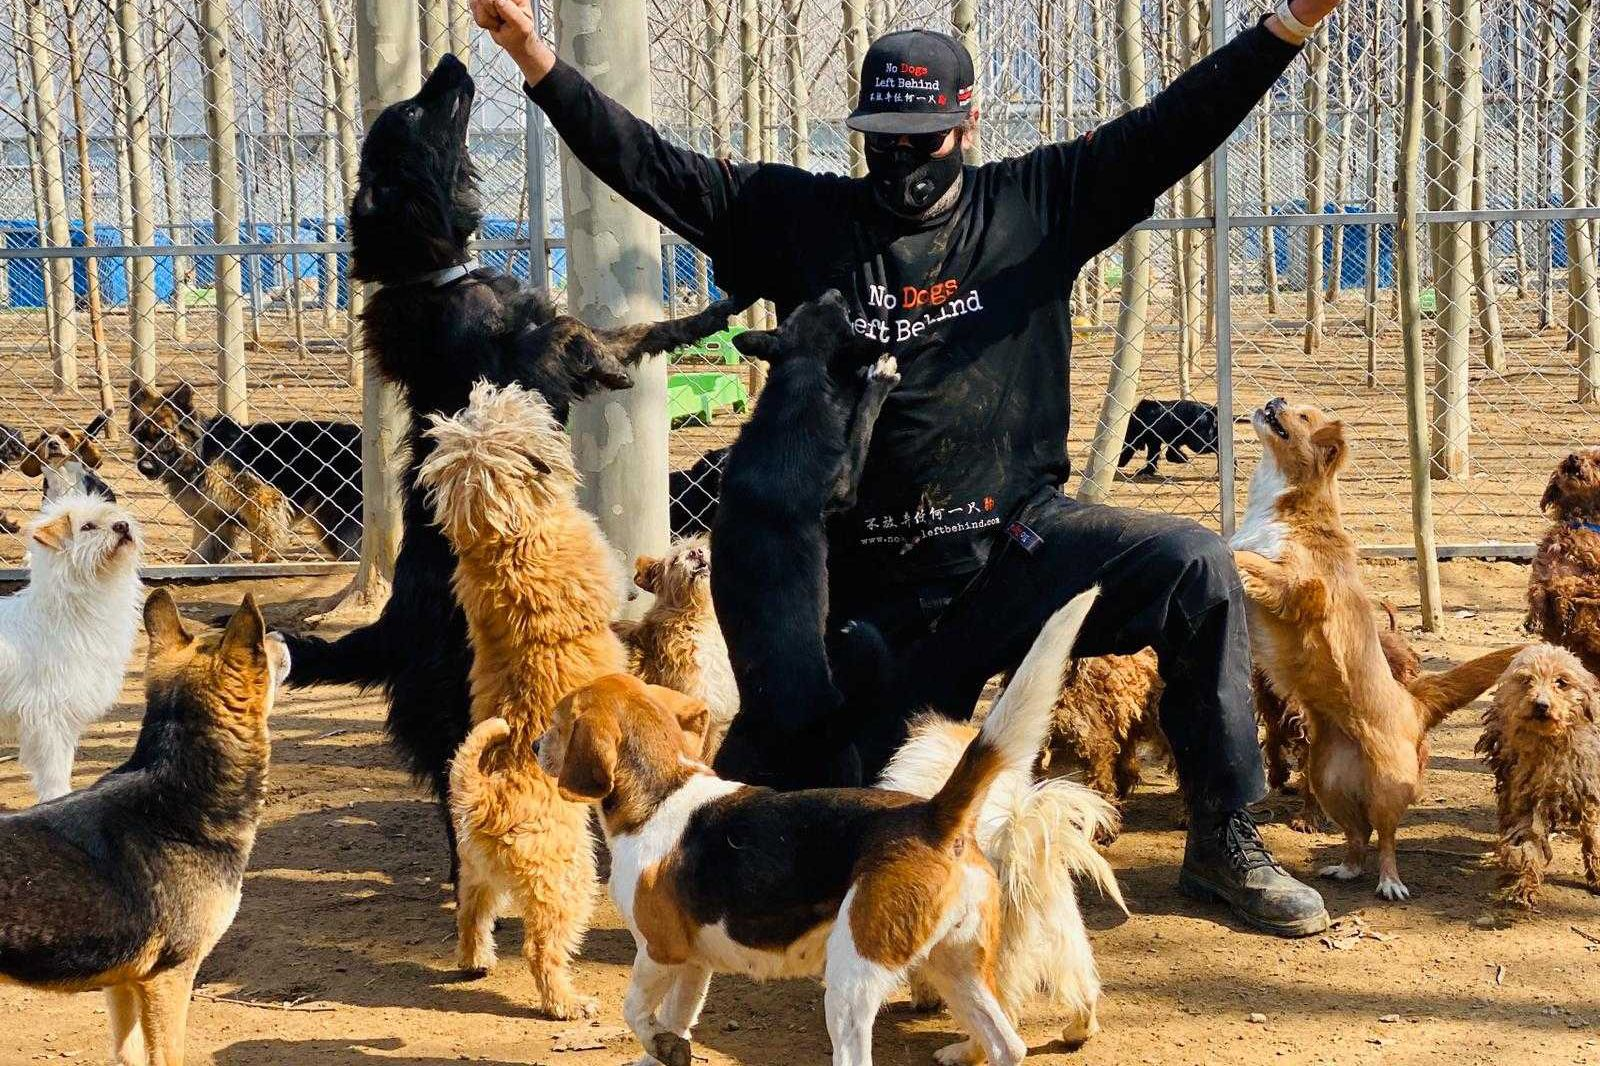 Jeffrey Beri, founder of No Dogs Left Behind, at his Beijing sanctuary for rescued K9s.